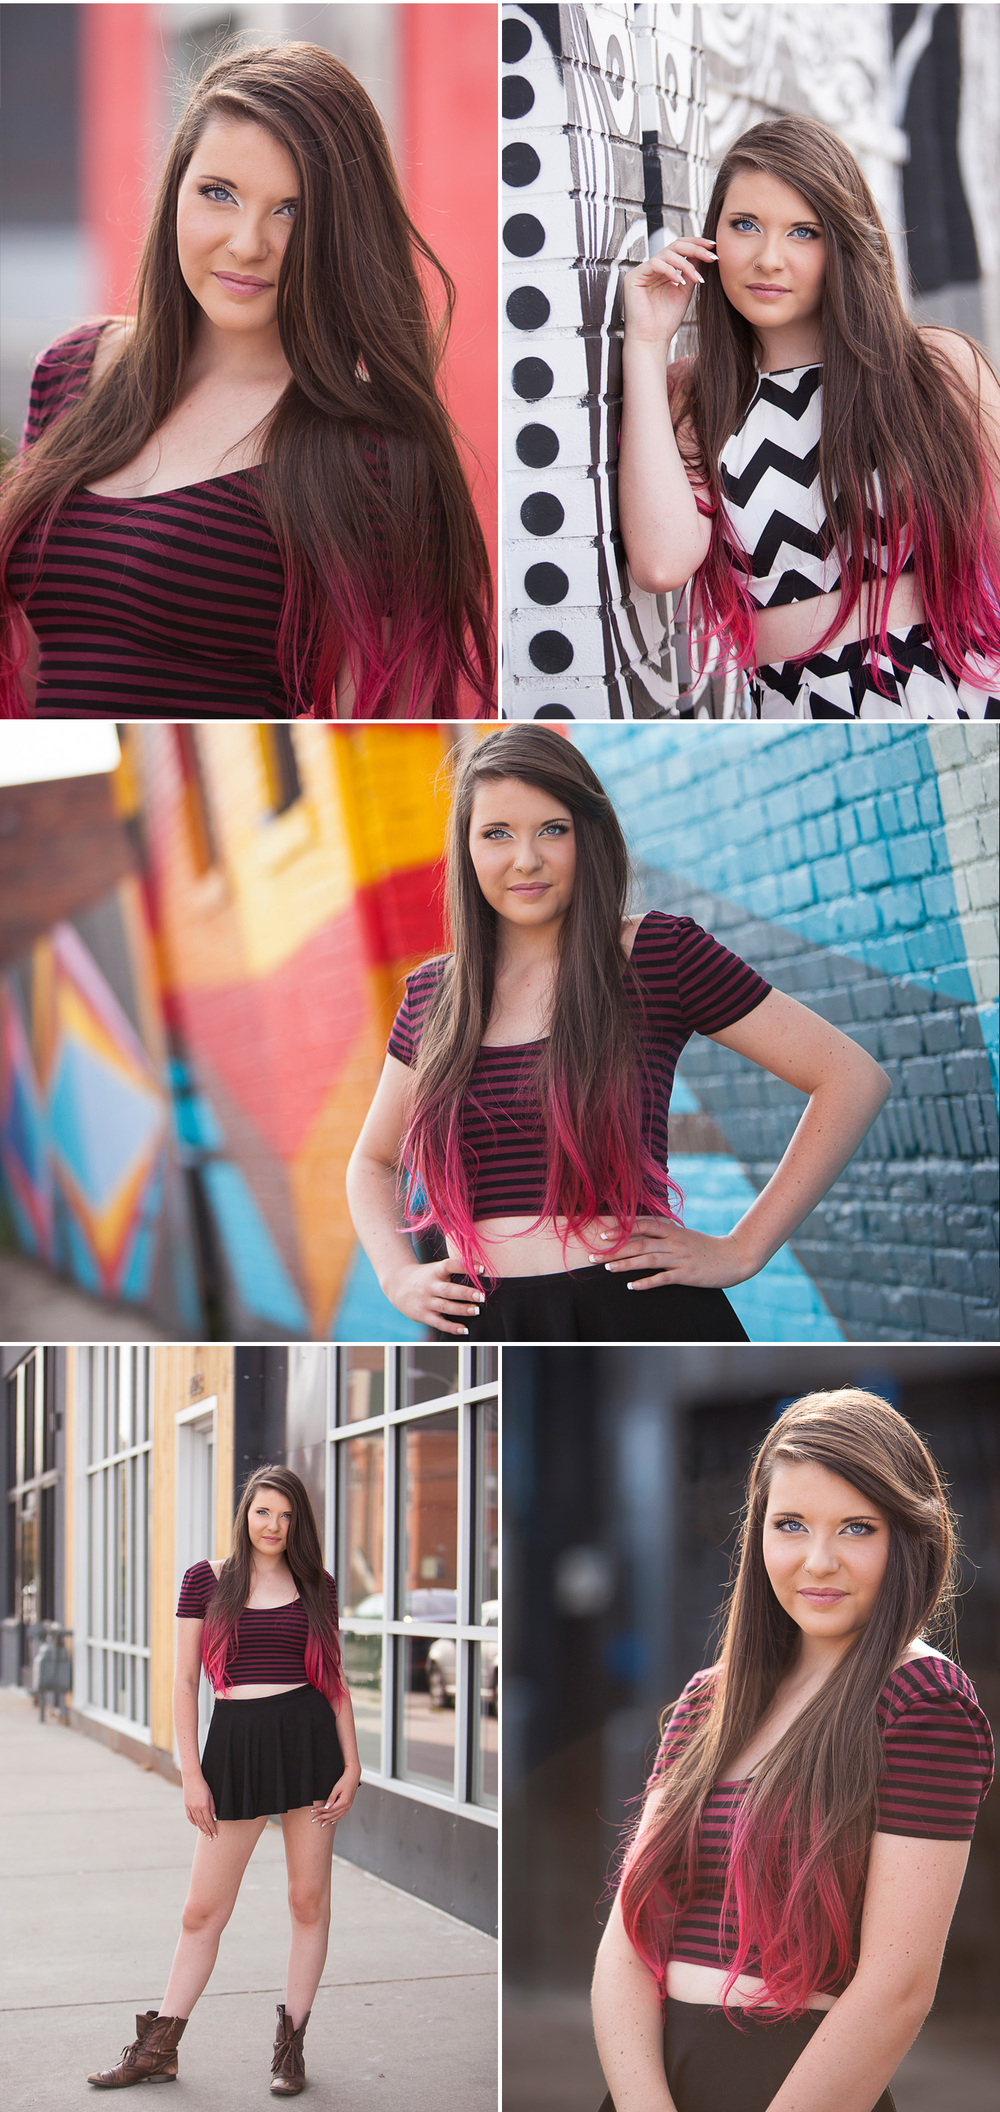 Senior Pictures in Denver with Graffiti